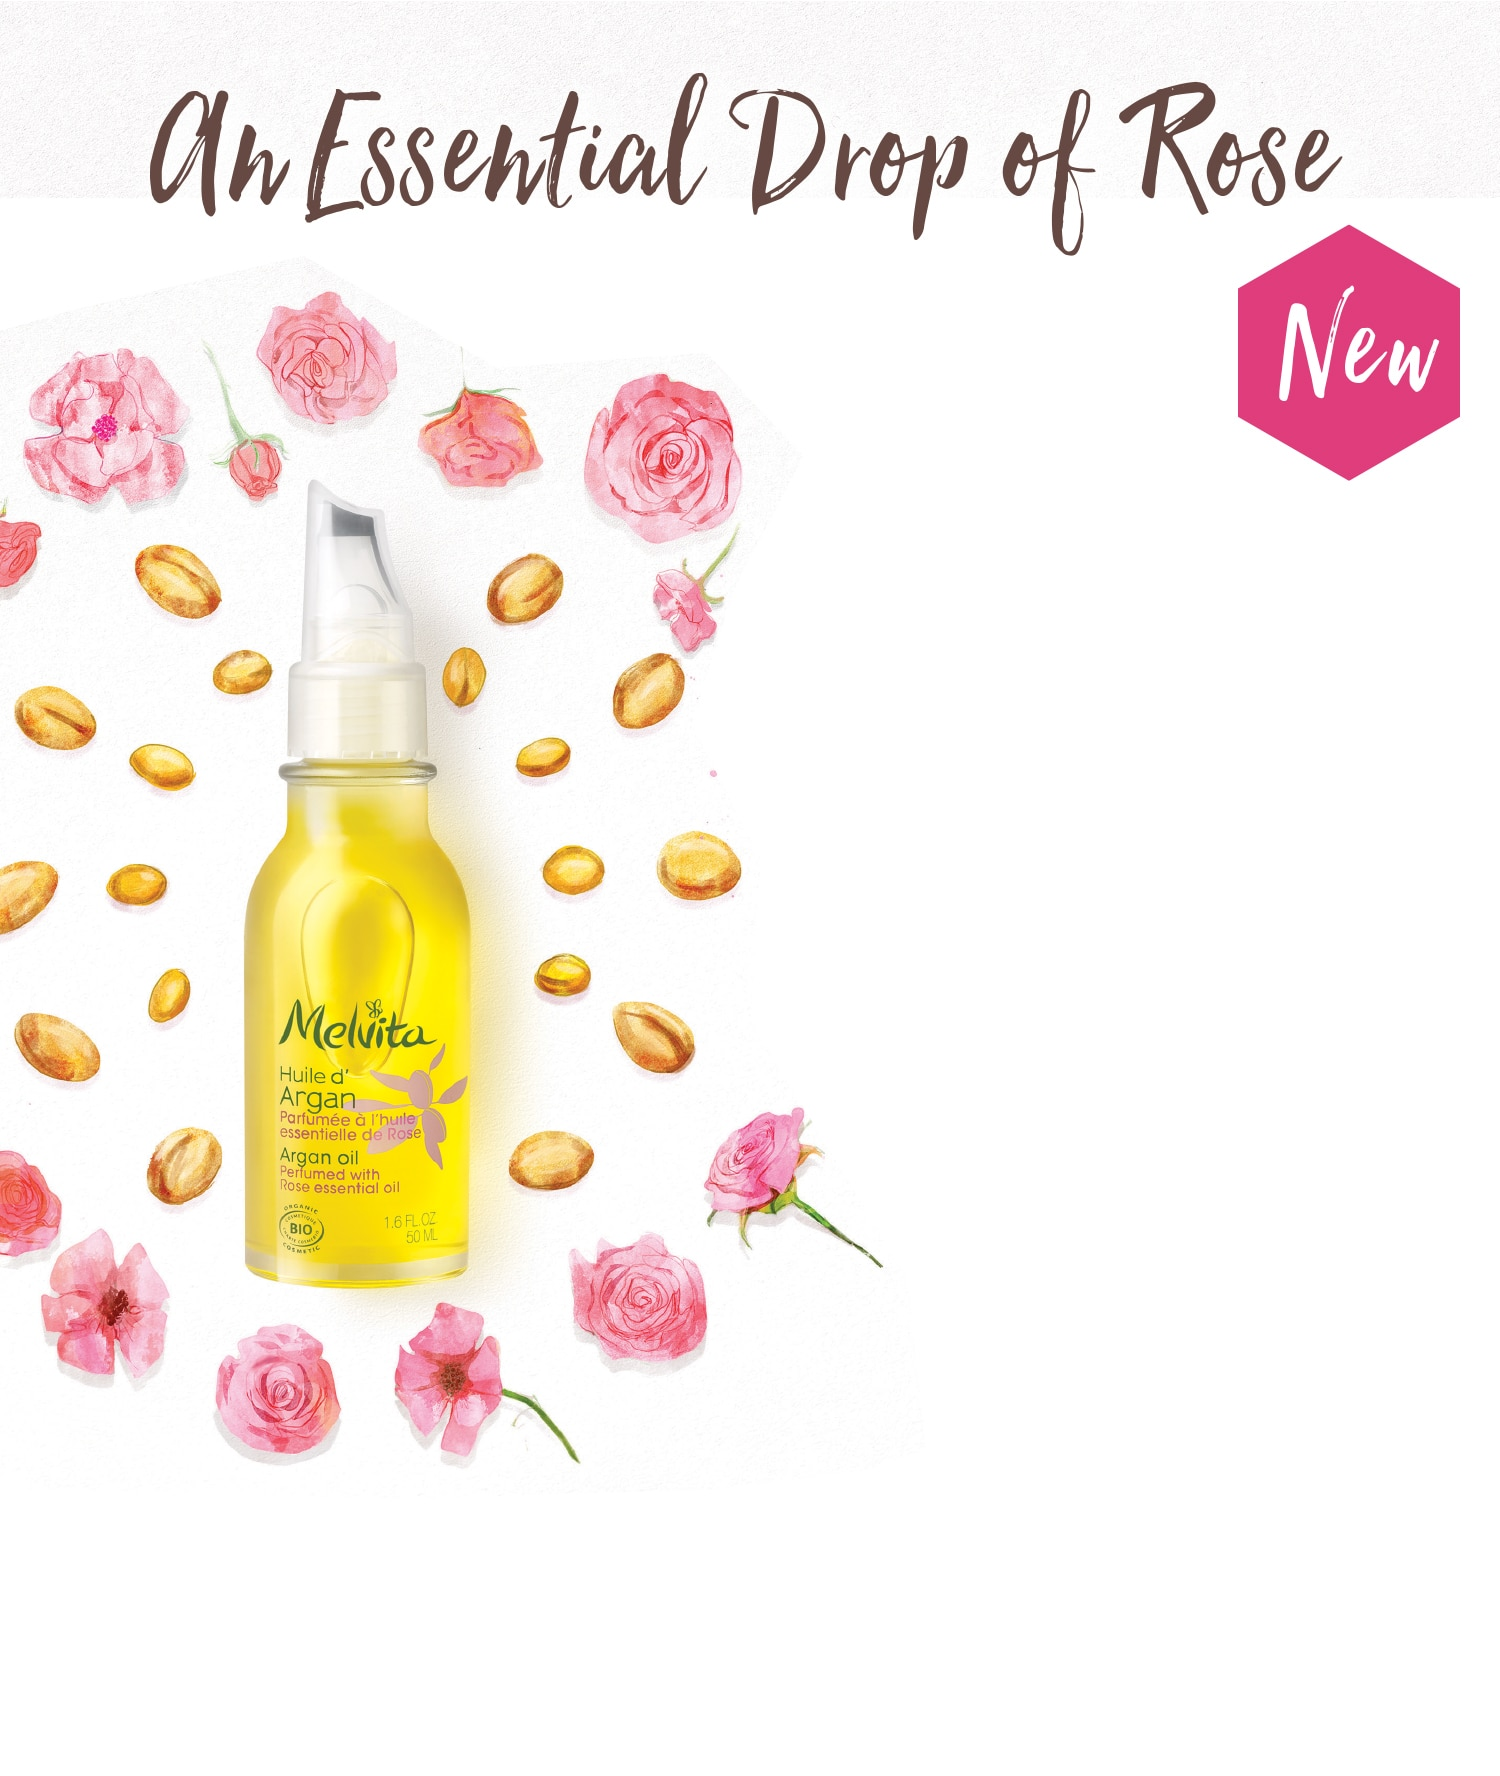 An Essential Drop of Rose